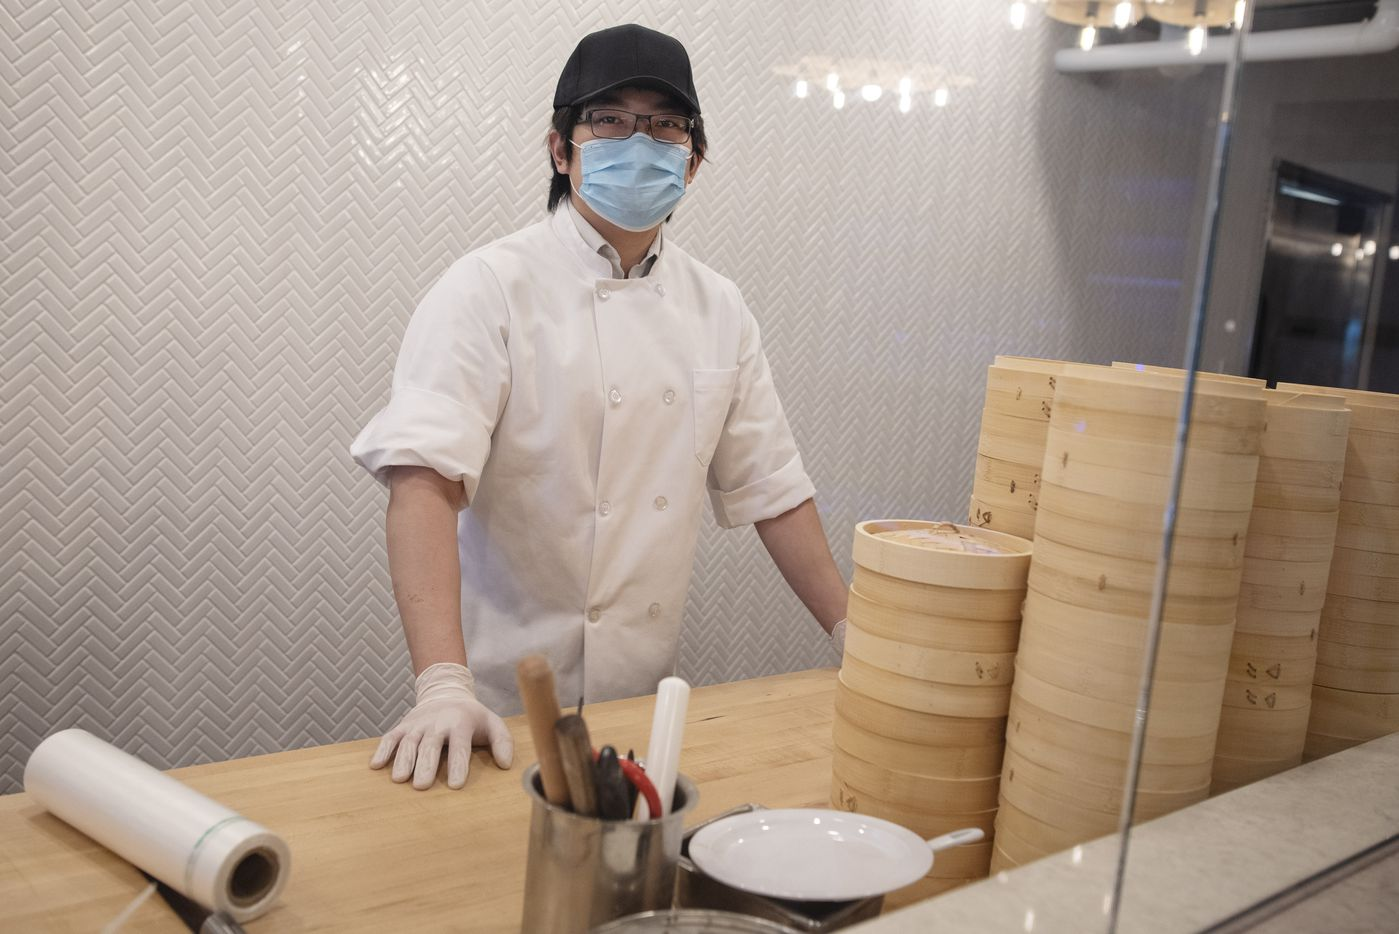 Ian Peng, 22, owner of Kitchen Master, behind the dumpling window inside his restaurant in Frisco, Sunday, May 31, 2020.